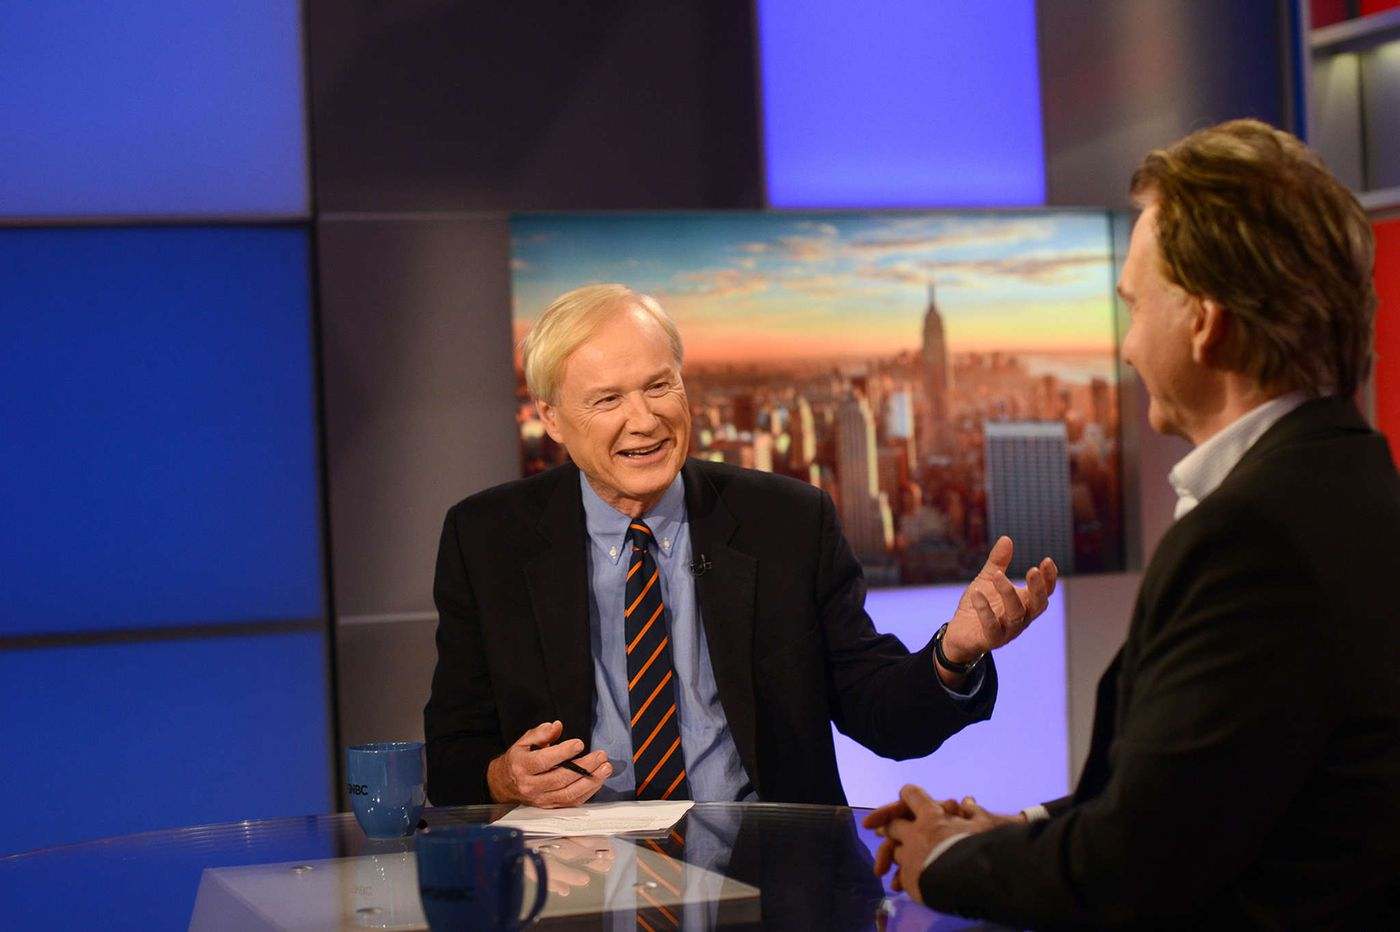 MSNBC host Chris Matthews had prostate cancer surgery. What comes next?